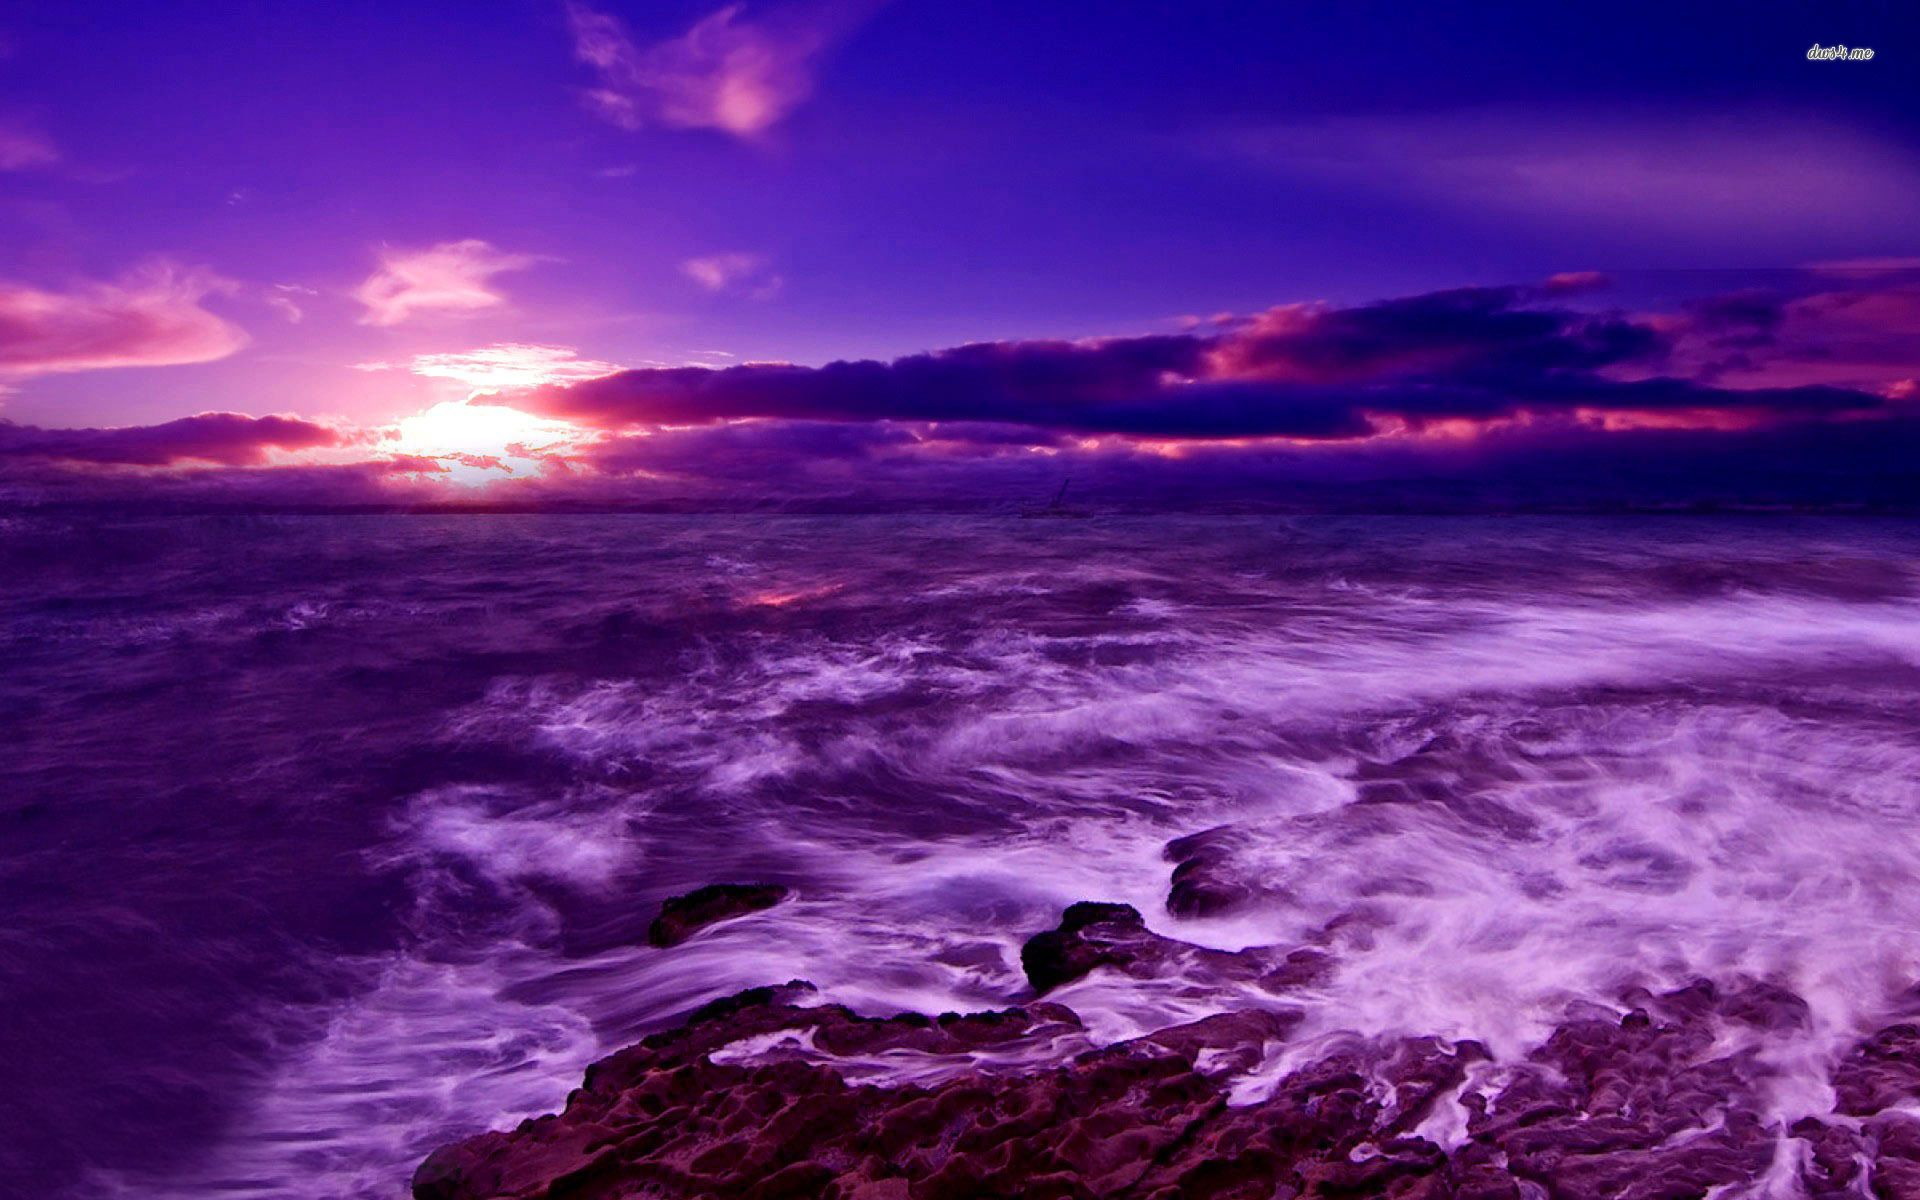 Ocean Wallpaper For Bedroom Purple Beach Sunset Beach Sunset Bedroom Sunset Beach Sea